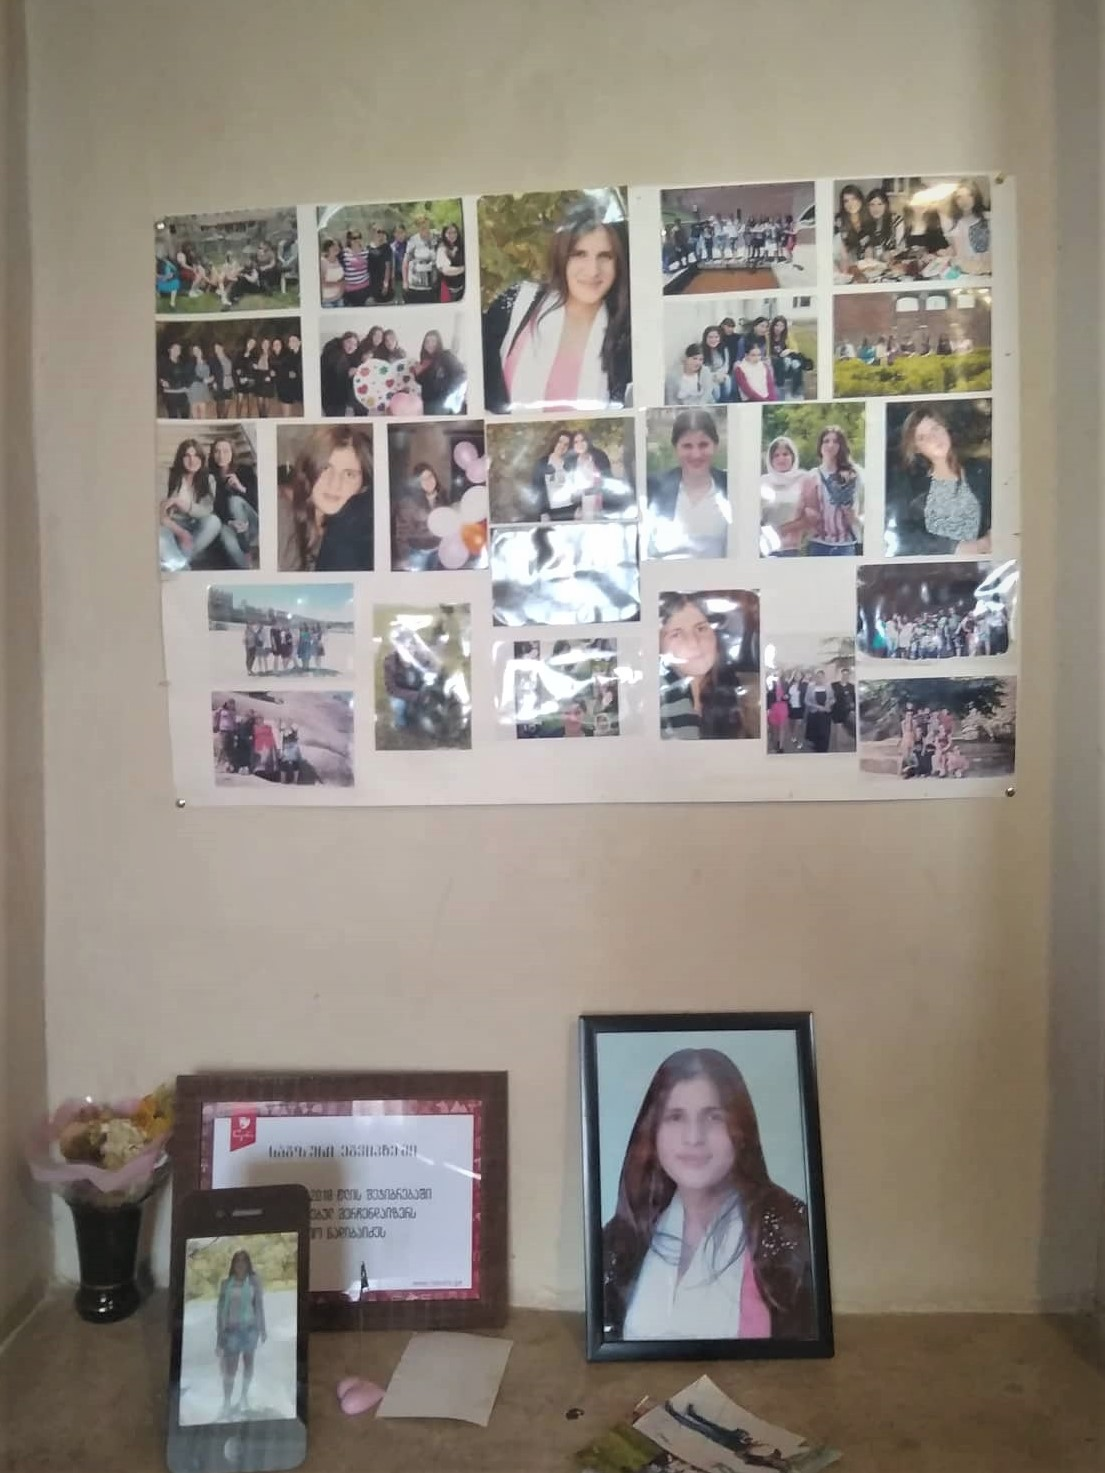 Manana Nadibaidze's pictures in the family's new house